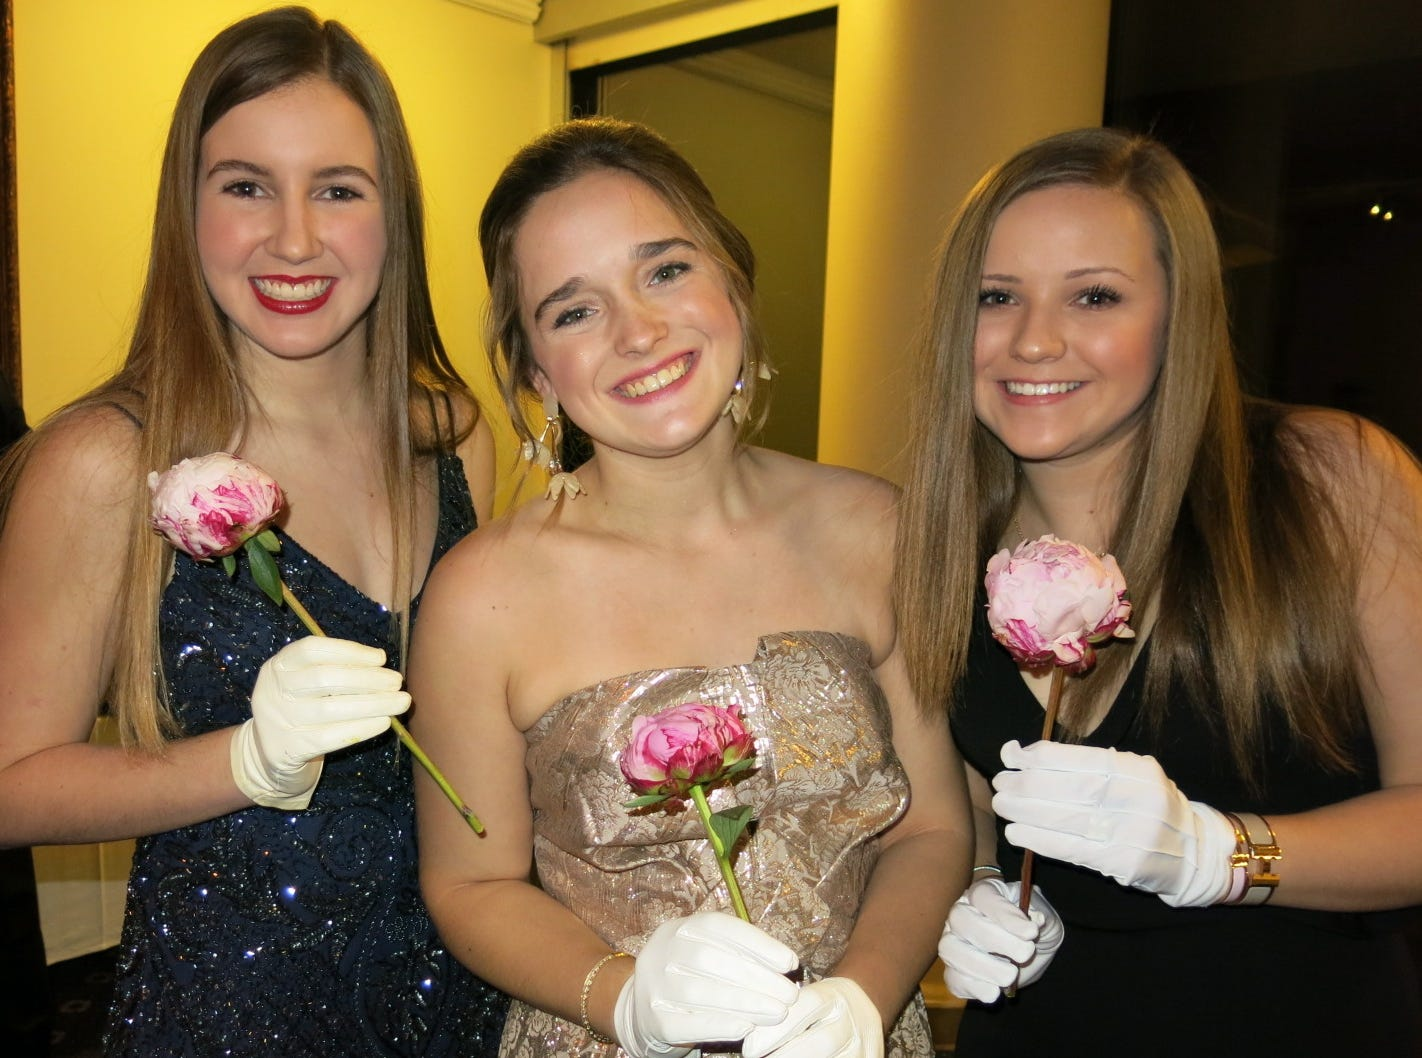 Ten Demoiselle Debutantes bowed to society at 70th anniversary ball at East Ridge Country Club.